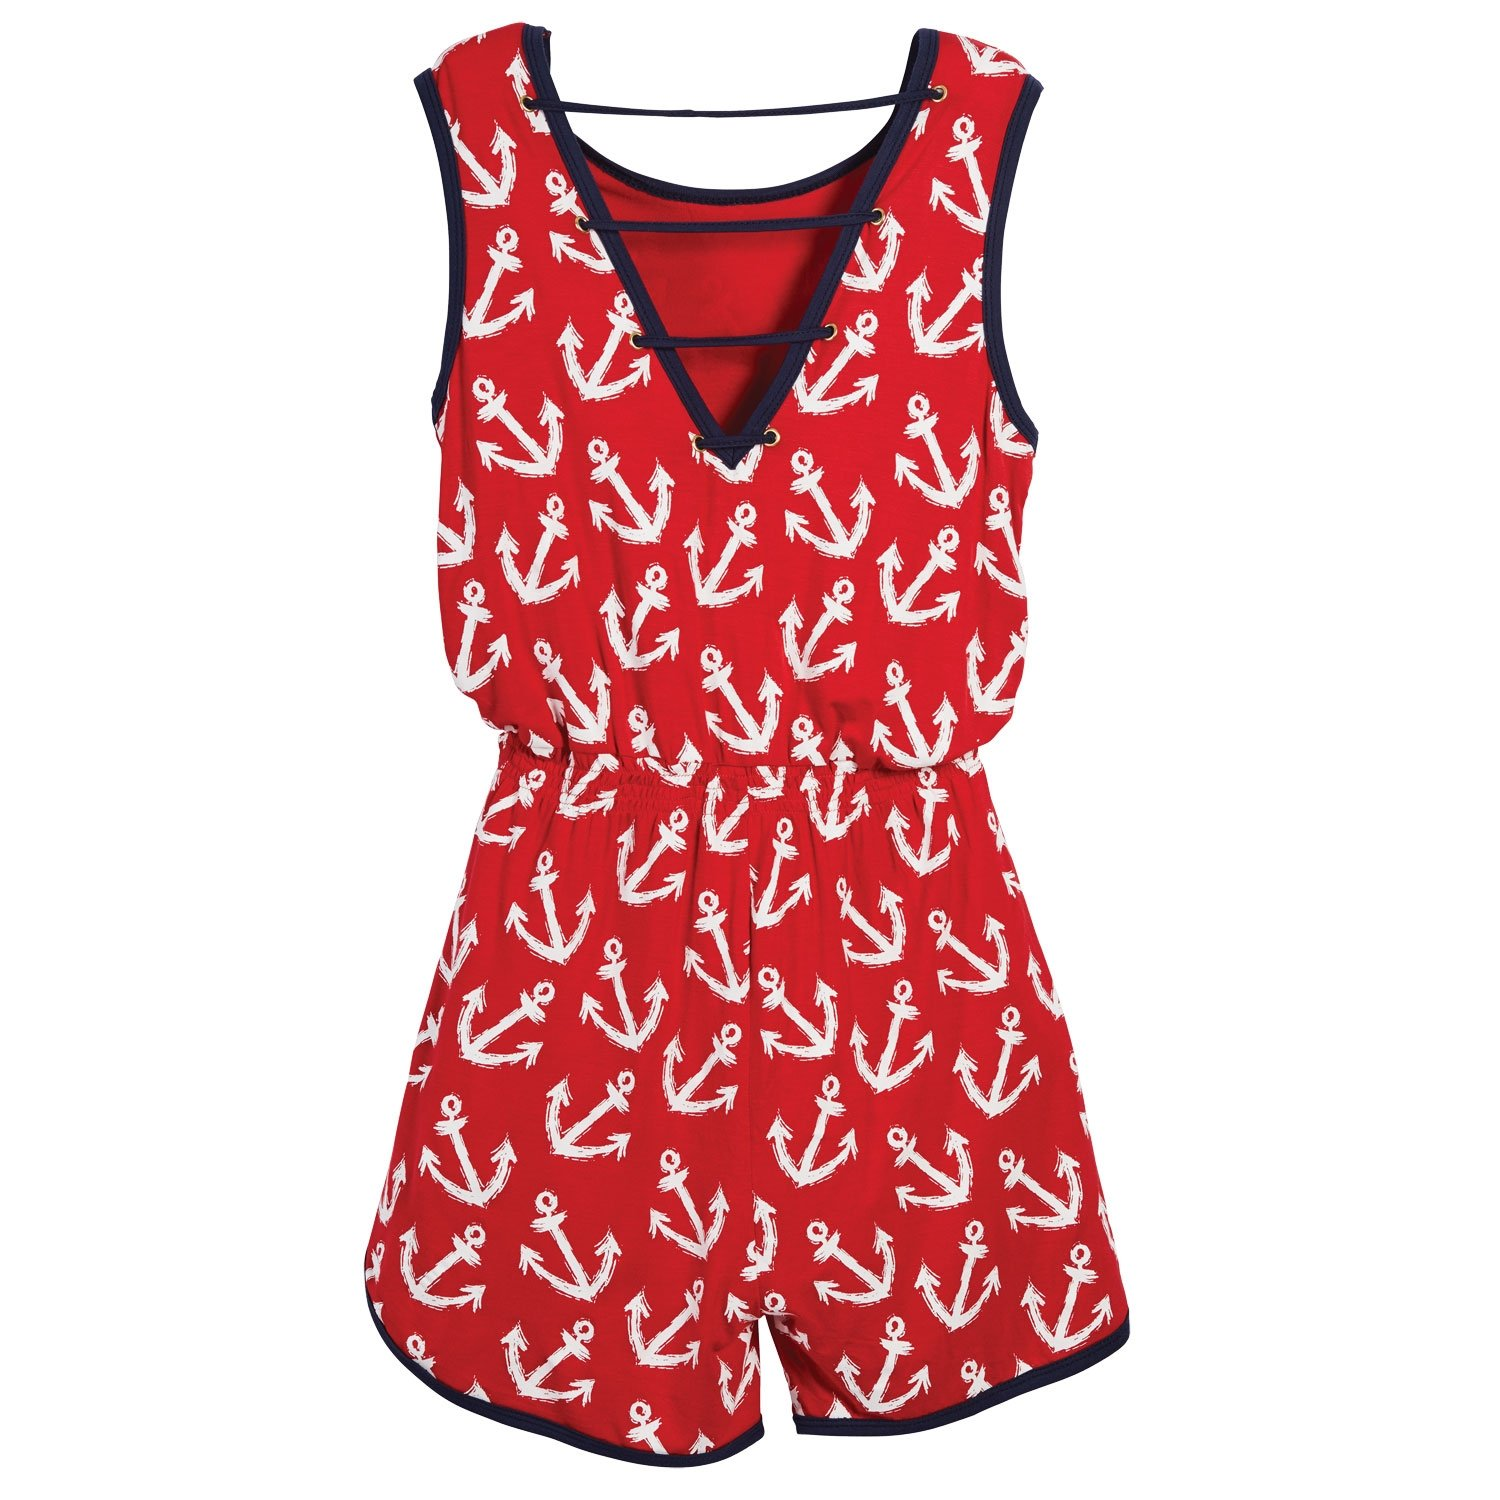 Beachcombers Girl's Tops Rayon/Spandex Anchor Romper Red/White Large by Beachcombers (Image #2)